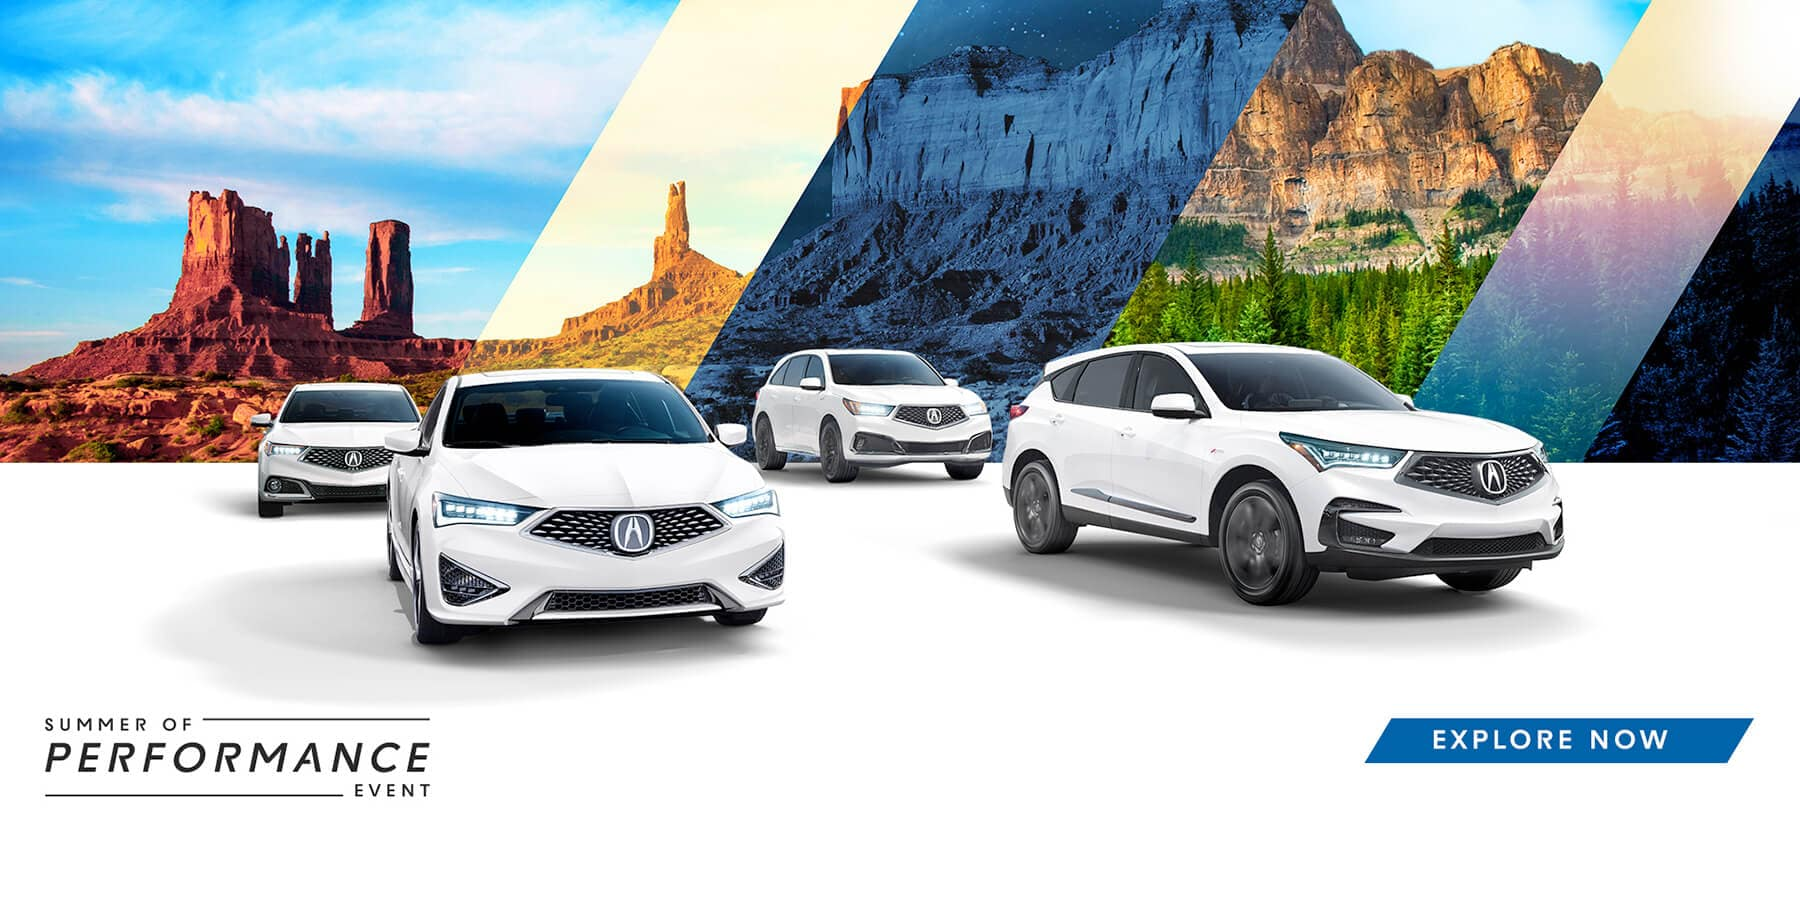 2019 Acura Summer of Performance Event HP Slide